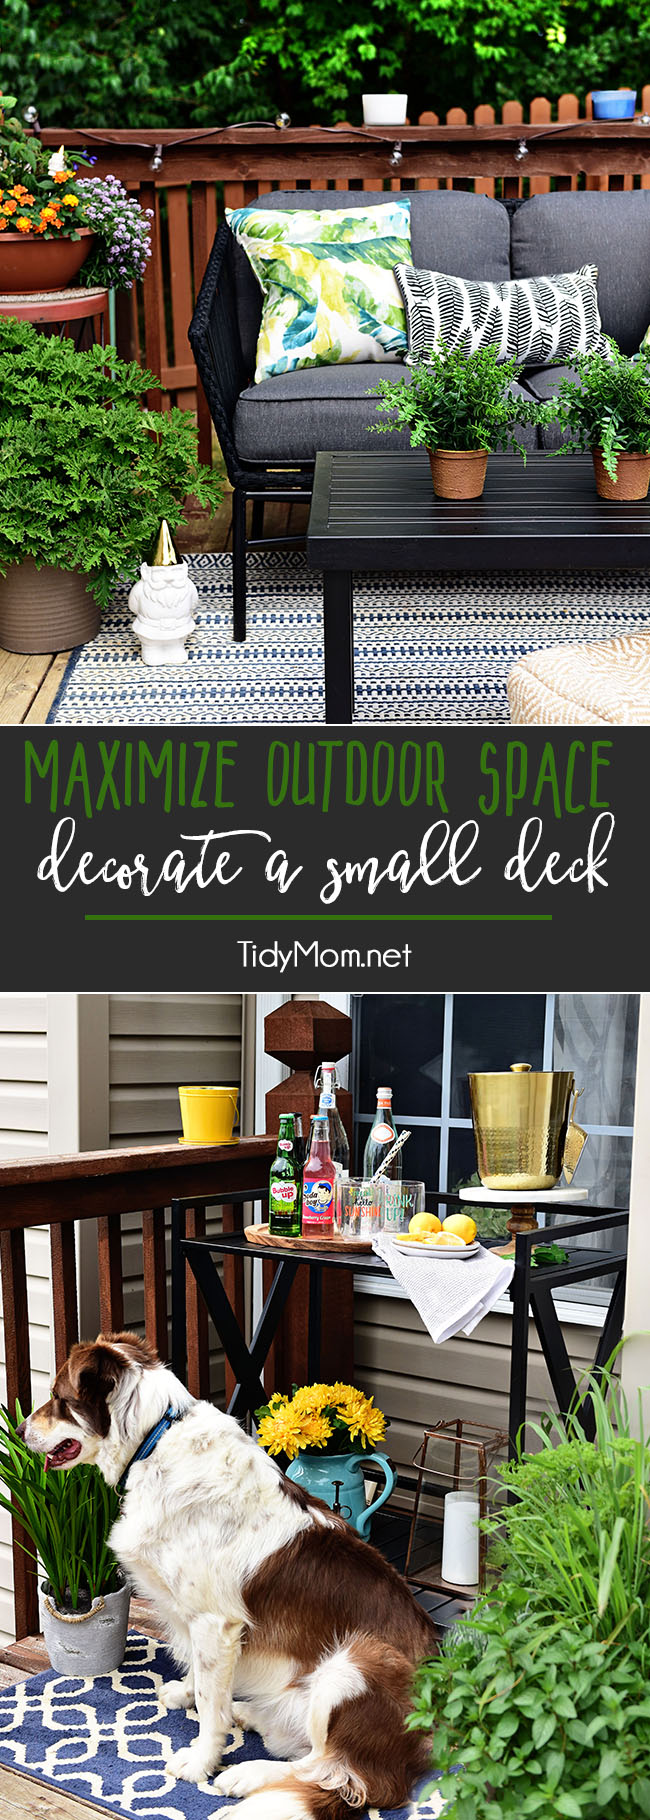 Maximize Outdoor Space! Learn How to Decorate a Small Deck or Patio. Find tips on getting the most out of your small deck or patio along with plants that keep mosquitos and other pests away. Get all the details at TidyMom.net